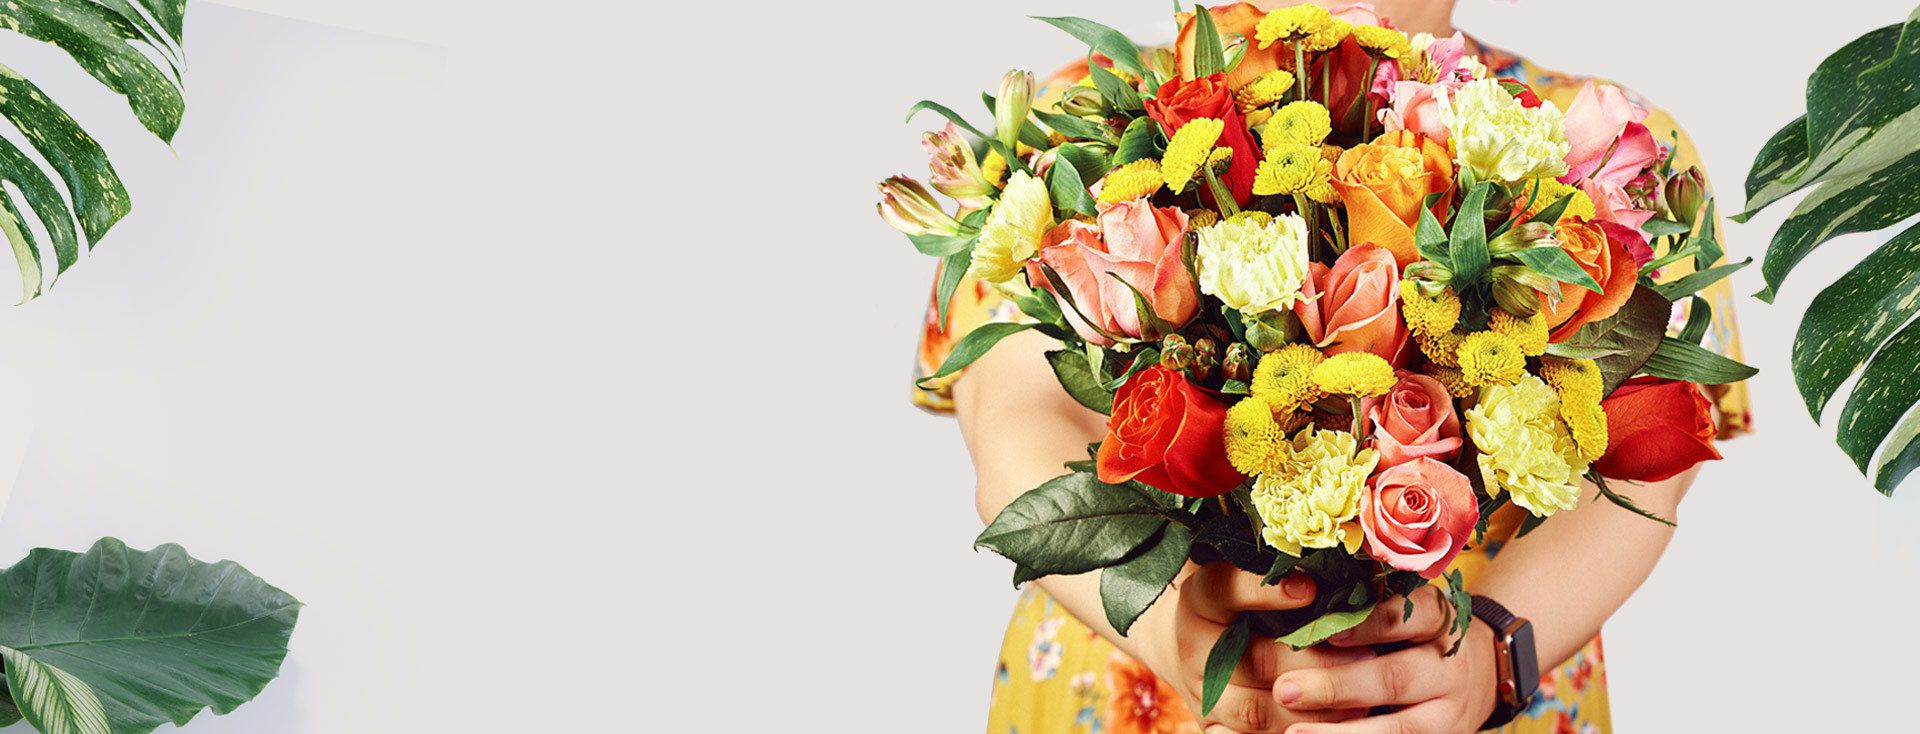 5f861b3f9b5 Flowers - Flower Delivery - Send Flowers - The Bouqs Co.